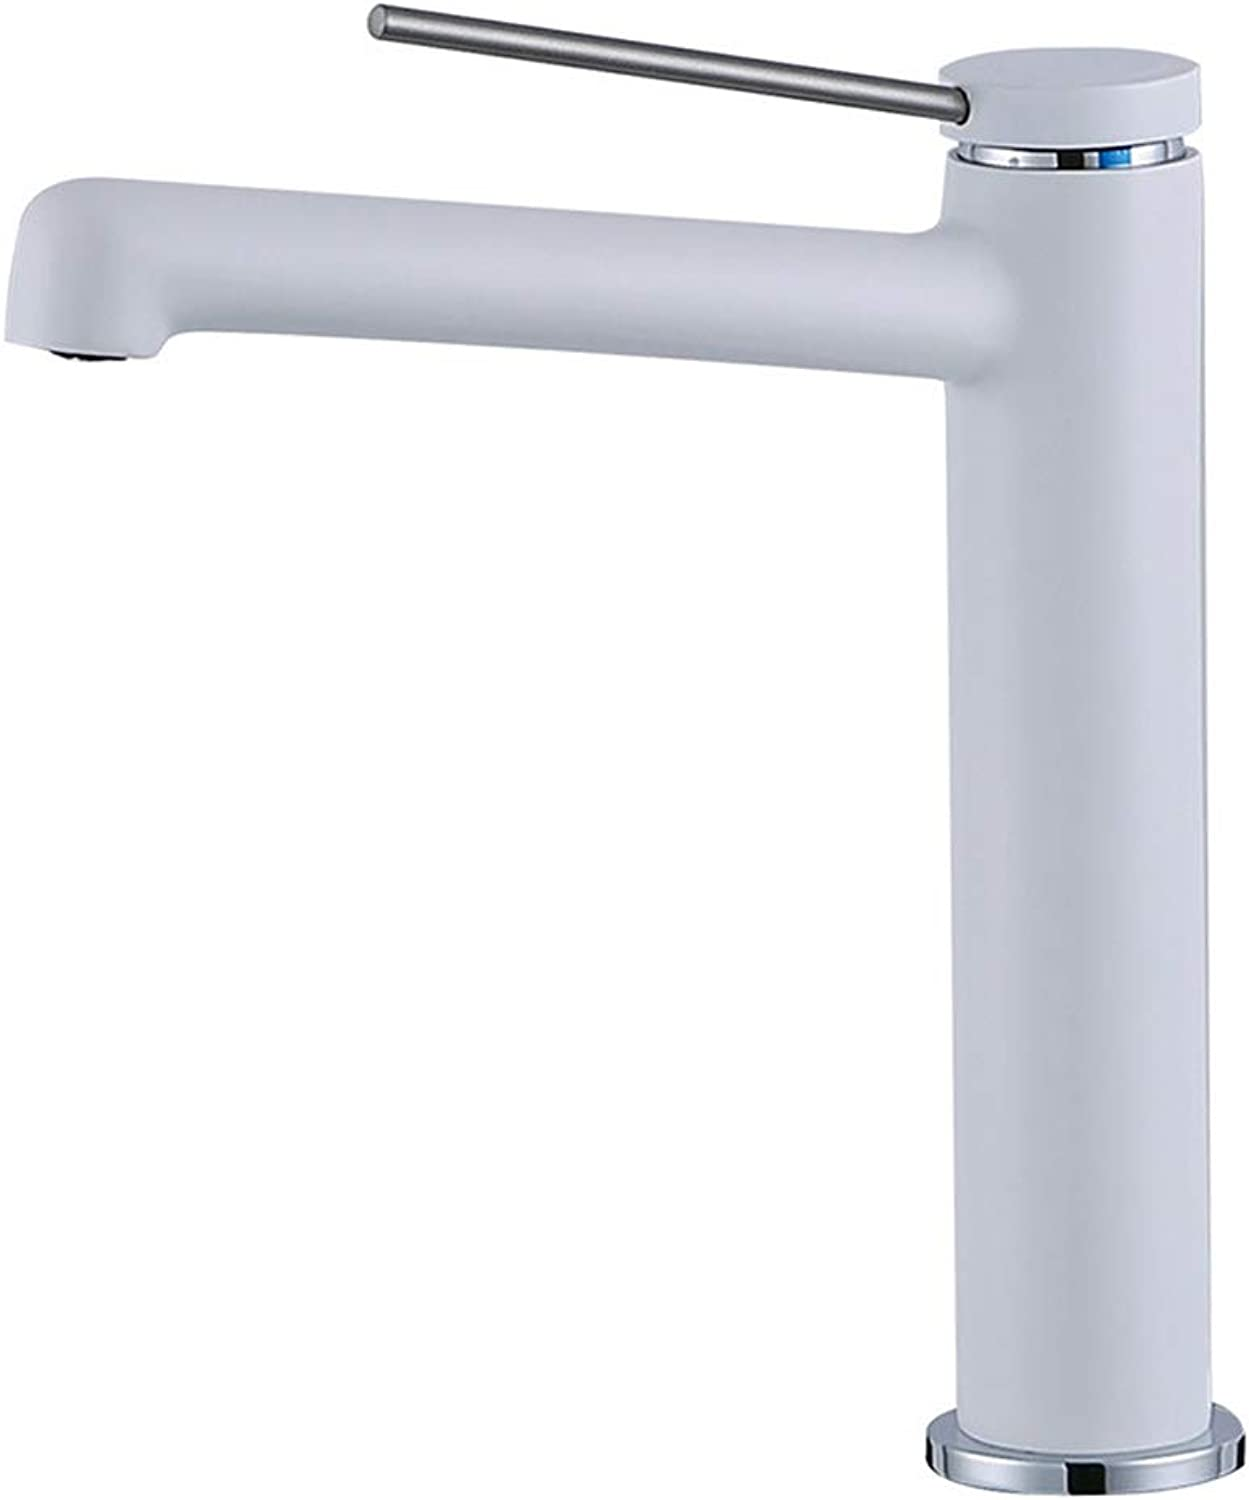 Modern all Brass Above Counter Basin Mixer Long Spout Handle Taps plating Bathroom Sink Hot Cold Taps,WhiteFaucet